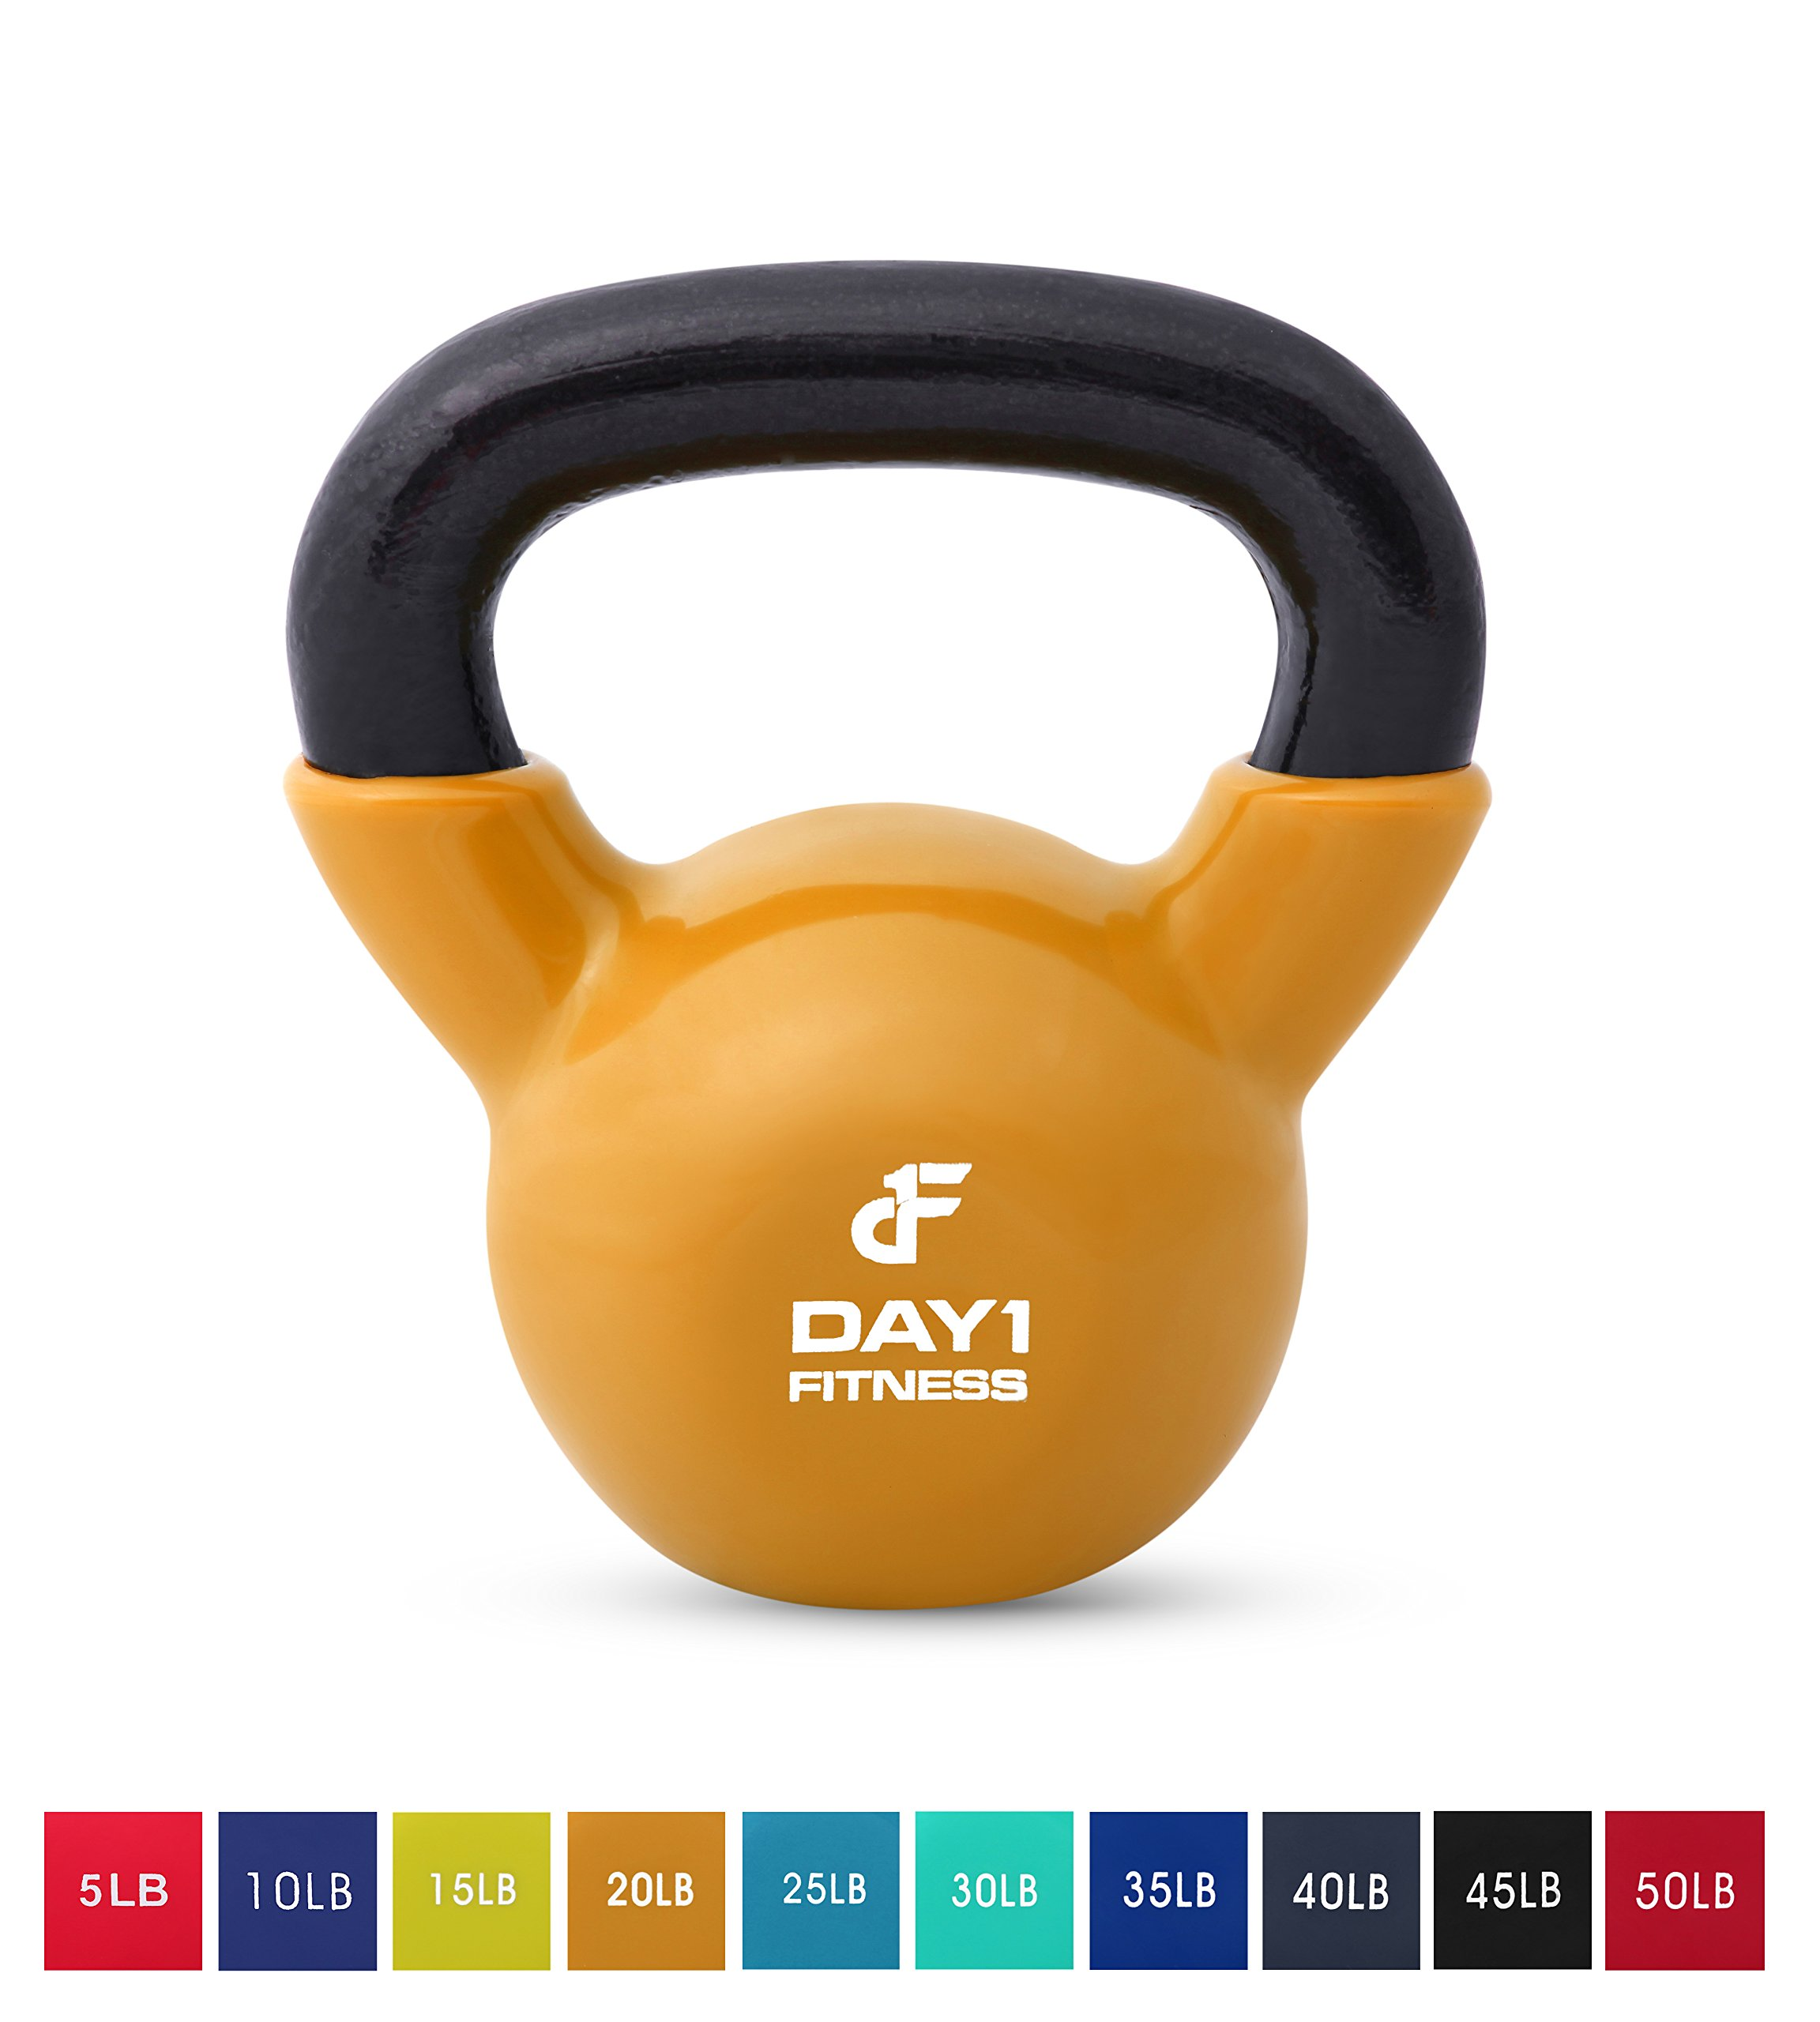 Day 1 Fitness Kettlebell Weights Vinyl Coated Iron 20 Pounds - Coated for Floor and Equipment Protection, Noise Reduction - Free Weights for Ballistic, Core, Weight Training by Day 1 Fitness (Image #1)